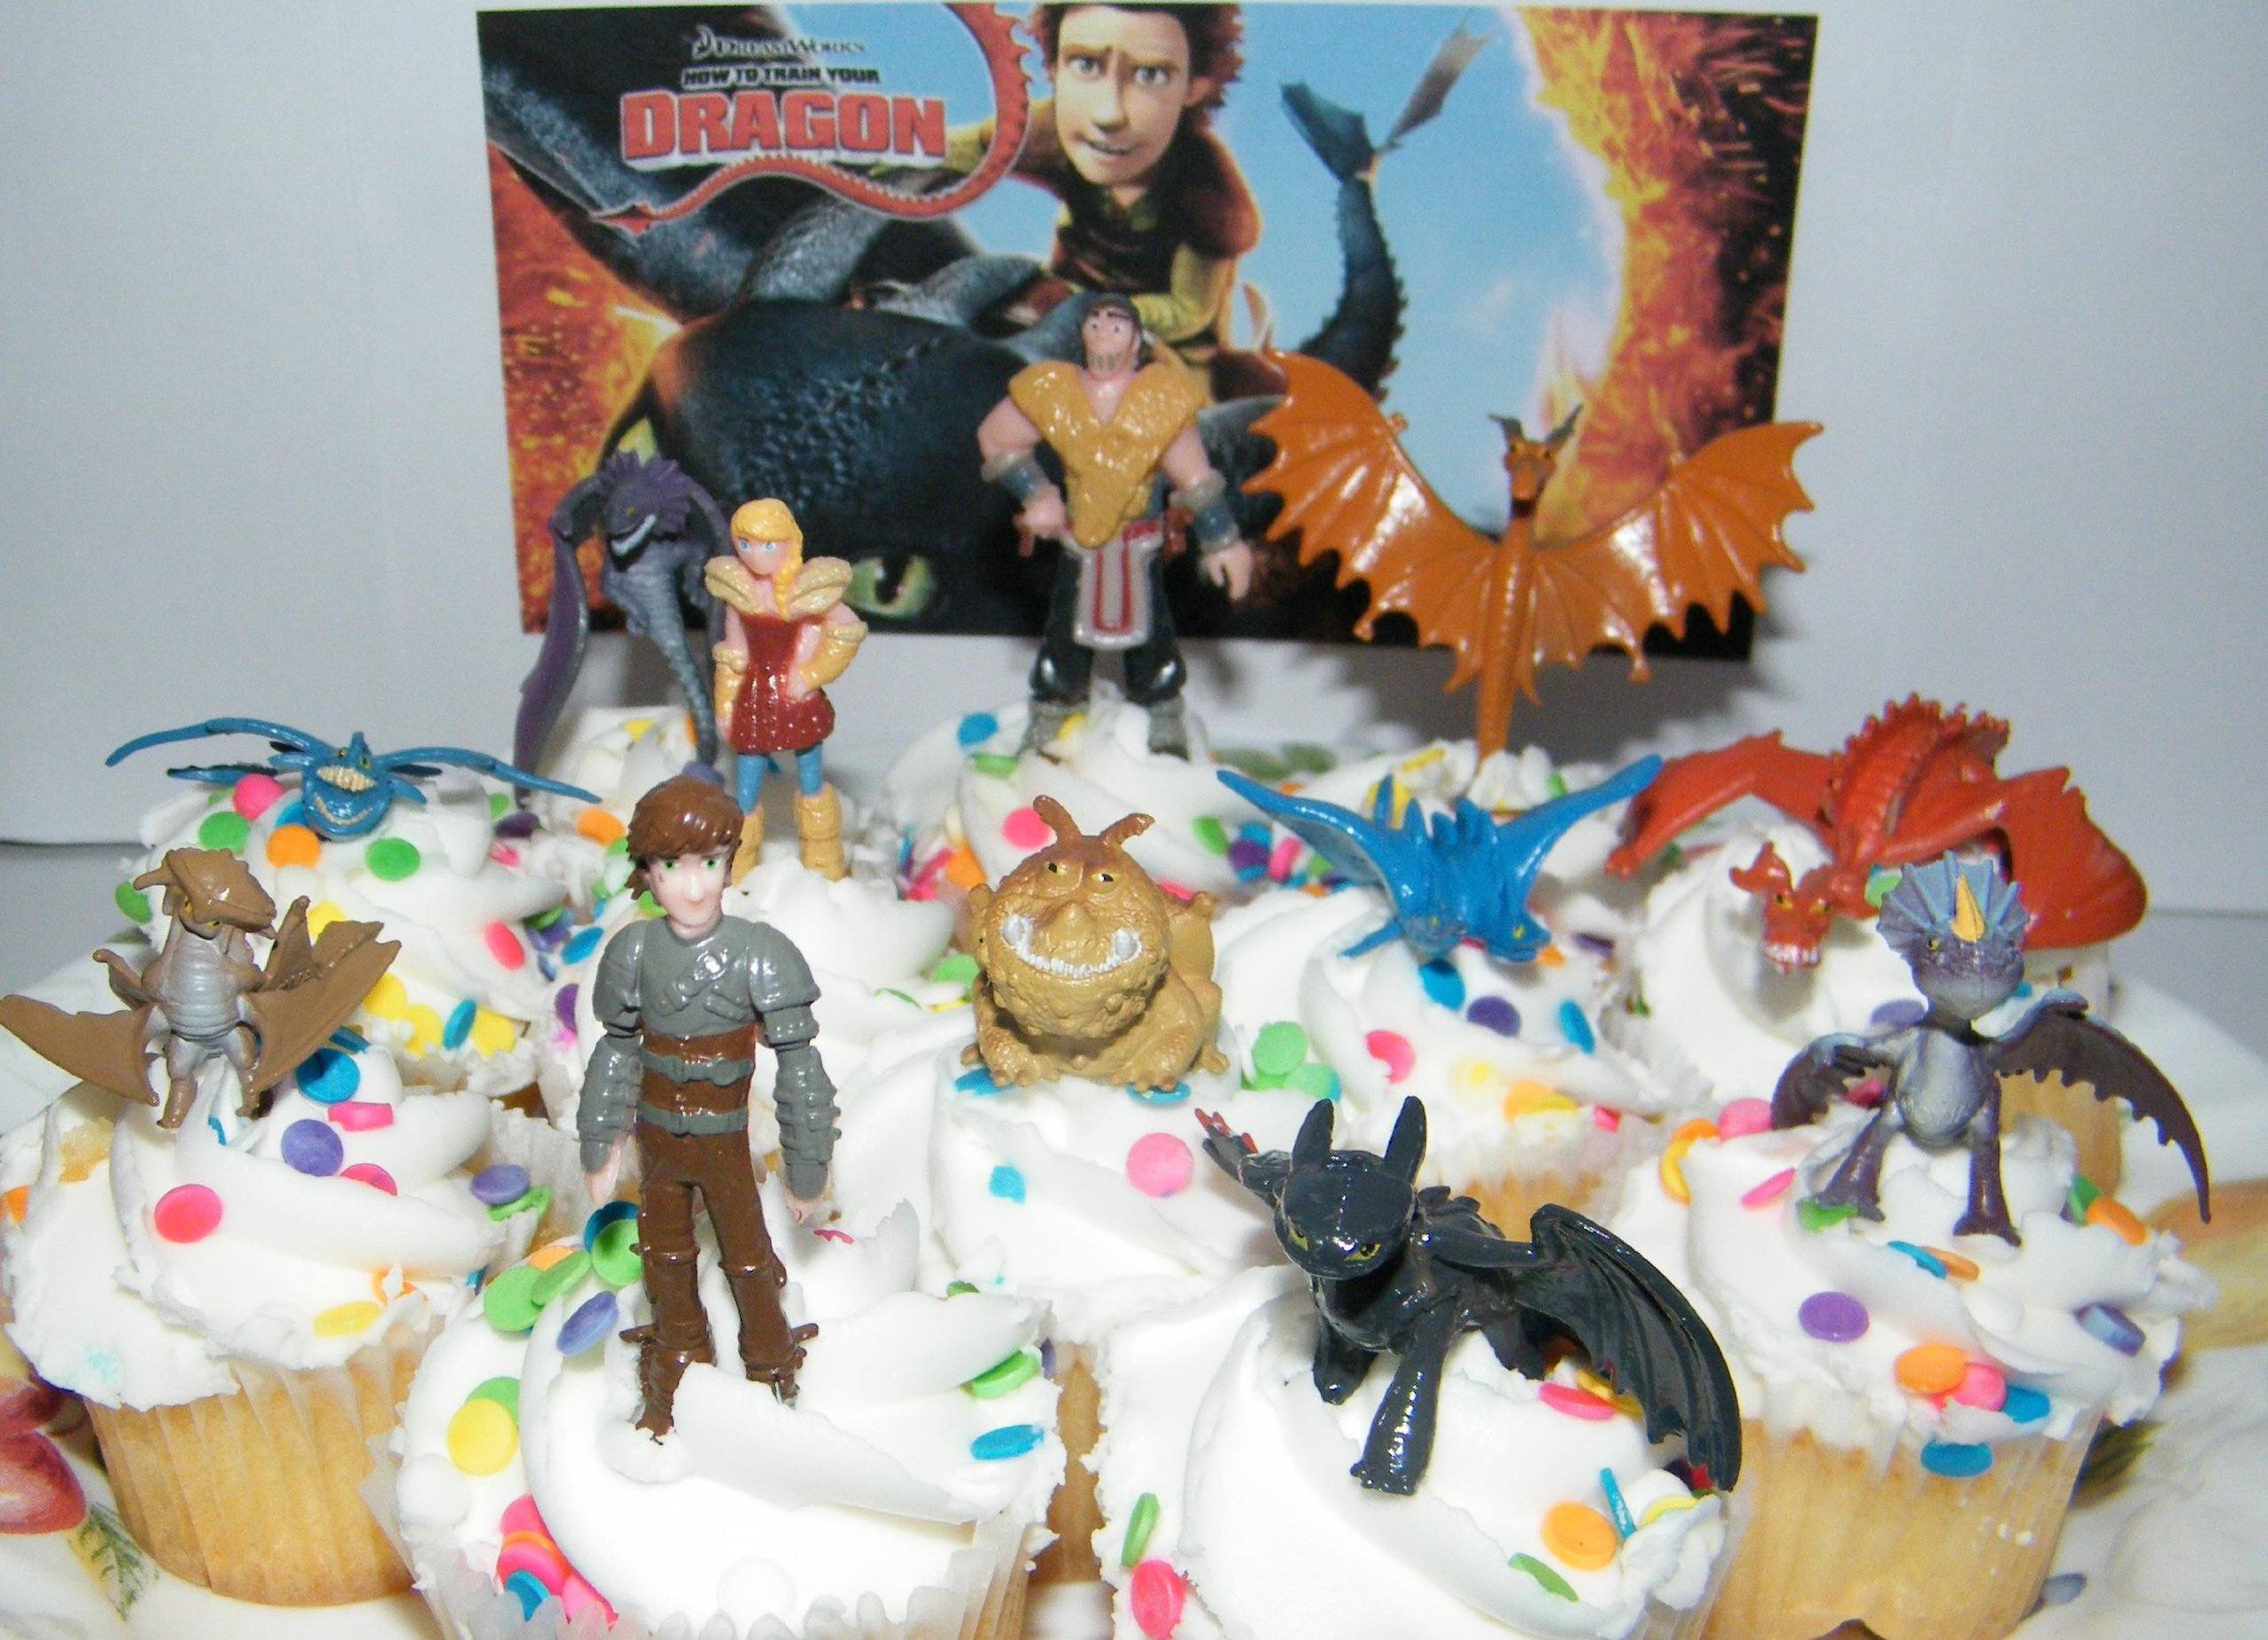 How to Train Your Dragon Set of 12 Figure Cake Toppers / Cupcake Party Favor Decorations with 9 Dragons, Hiccup, Astrid and Some New Charcters! by DreamWorks How to Train Your Dragon